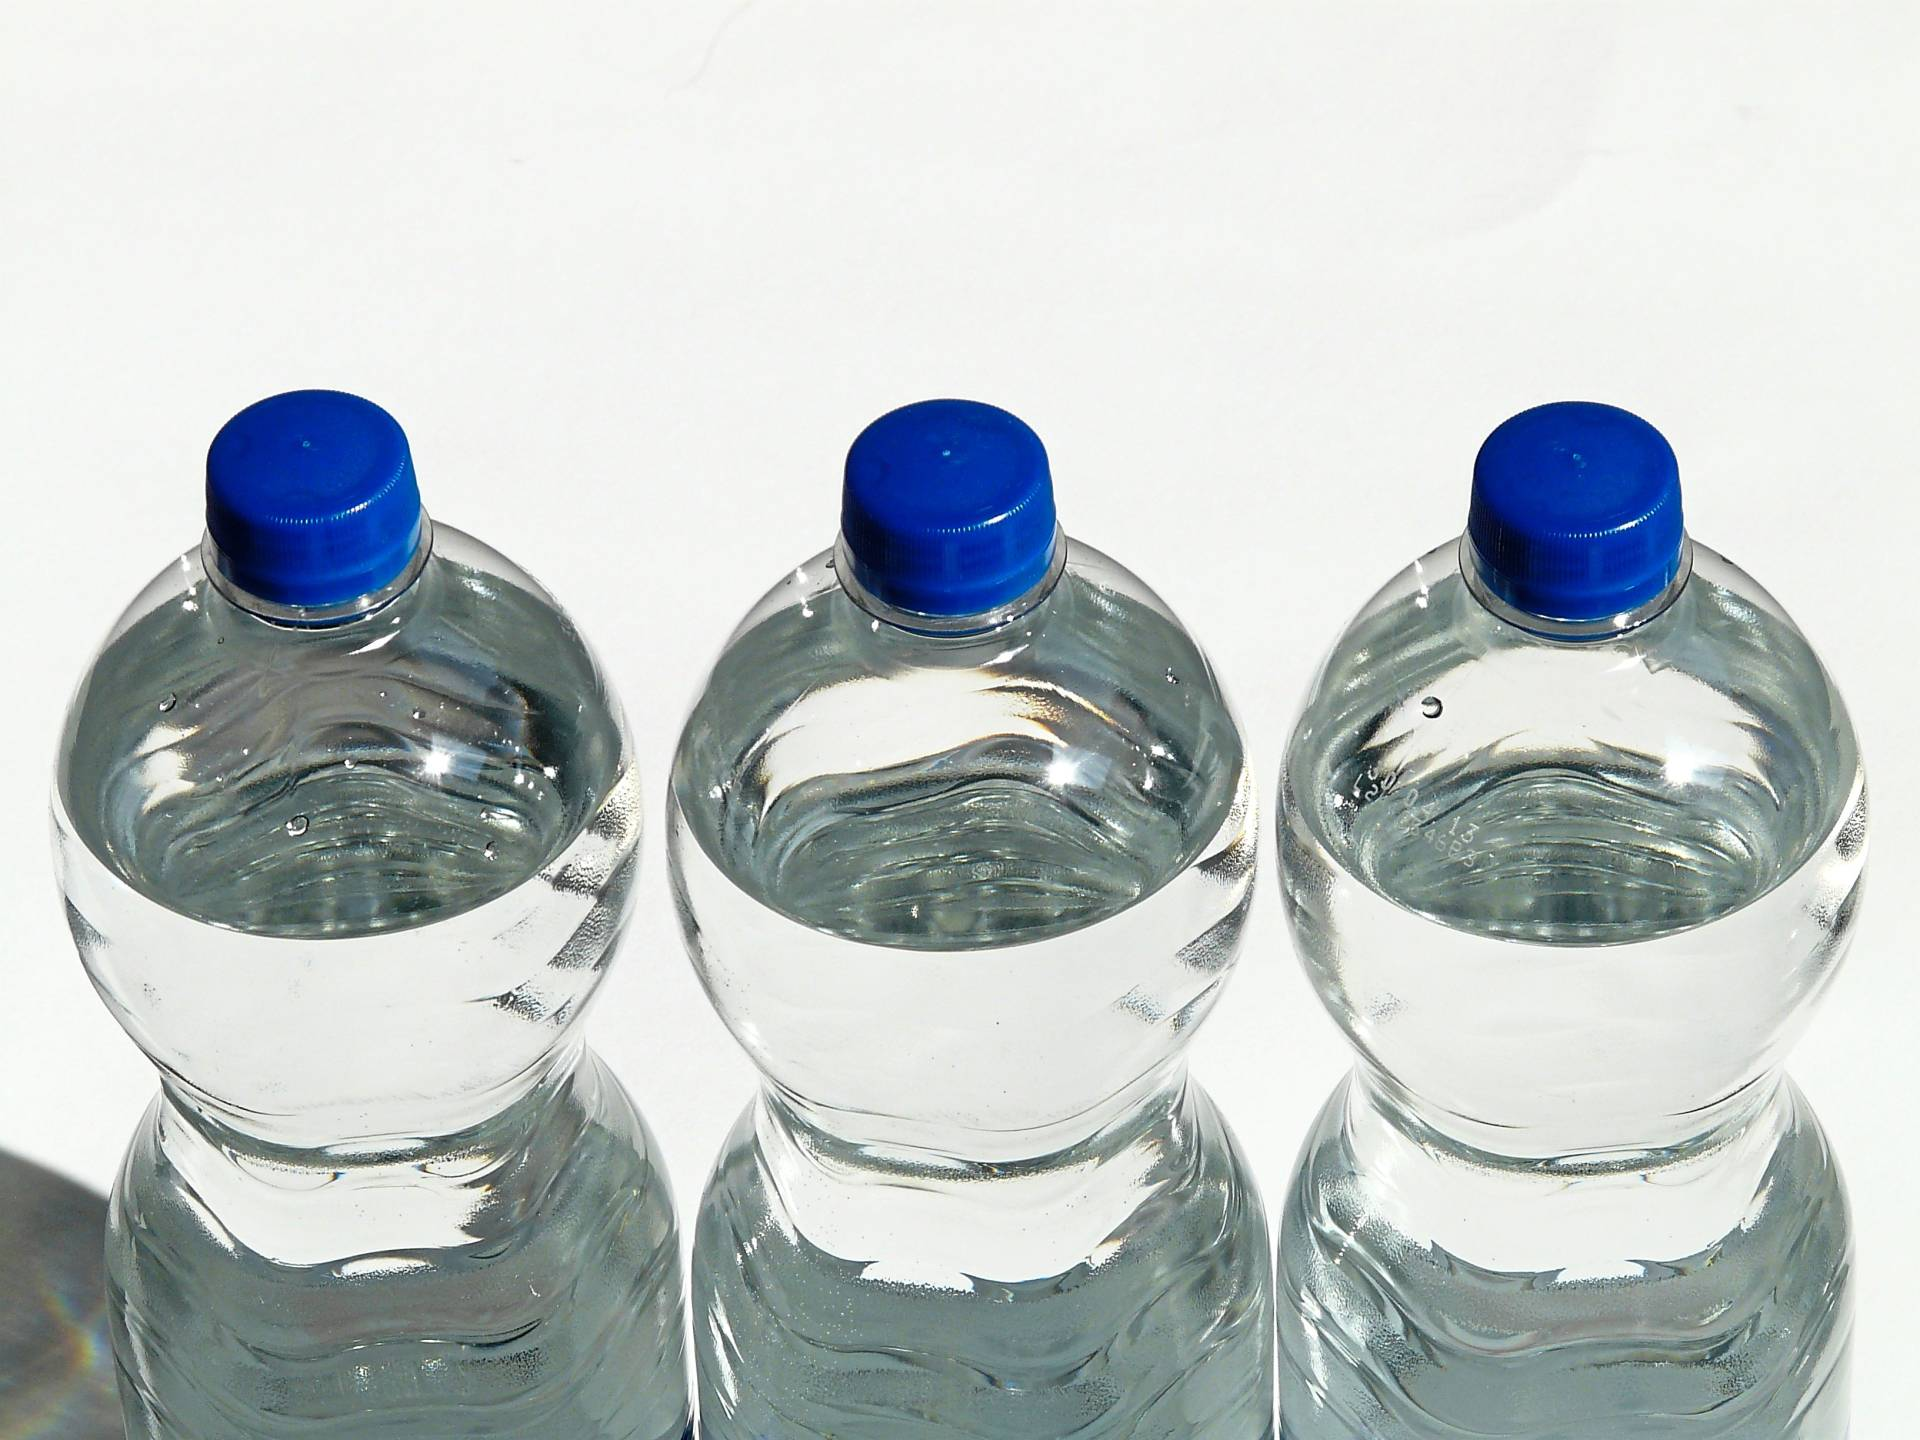 All you need to workout indoors are water bottles that can act as dumbbells.